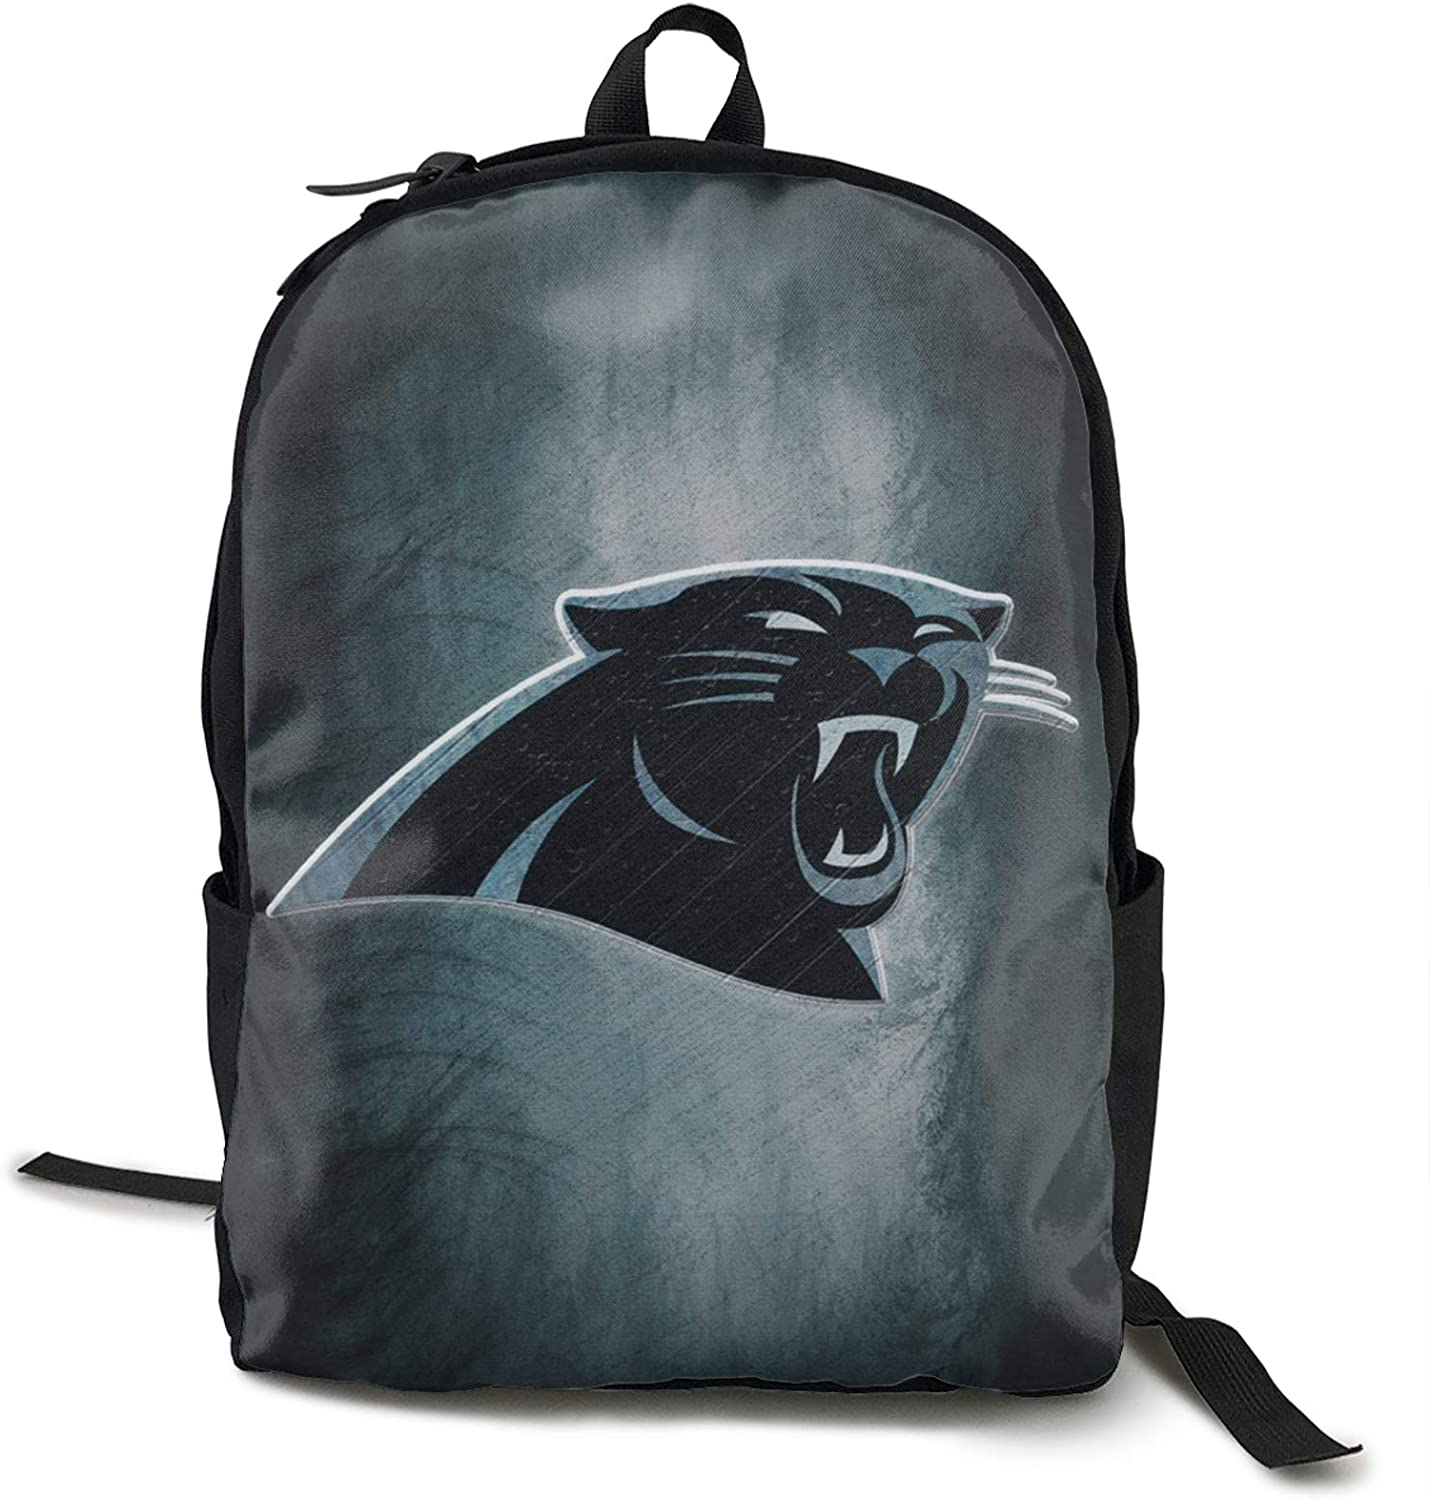 FDLB Unisex Classic Fashion Carolina Football Panther Casual Backpack Travel Backpack Laptop Backpack